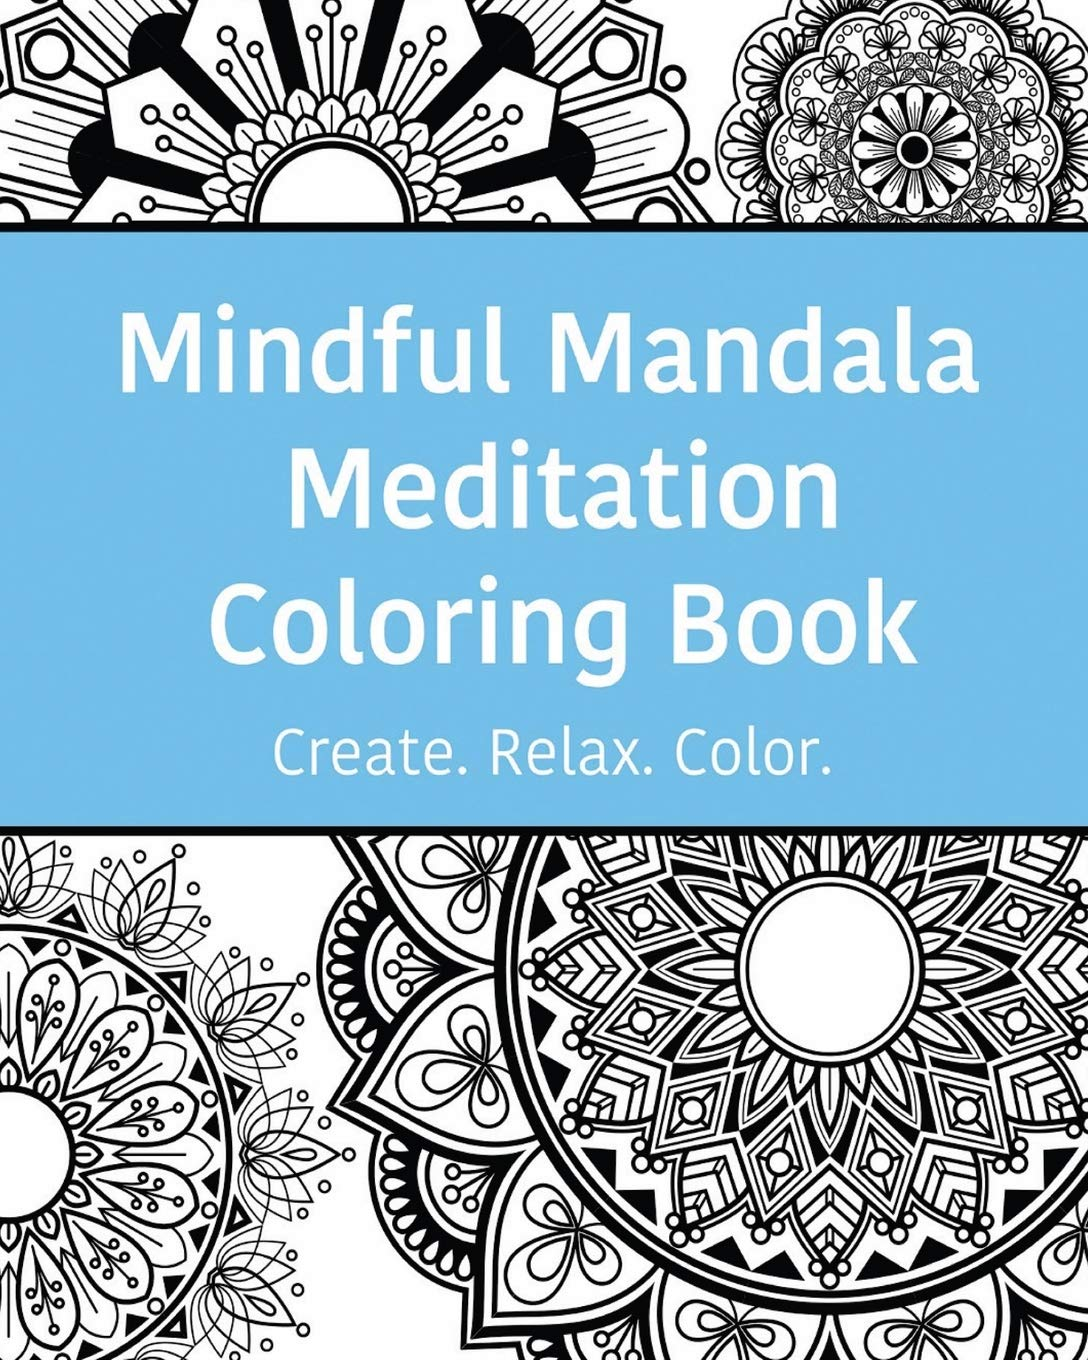 Download Ebook Mindful Mandala Meditation Coloring Book: High Quality Beautifully Designed Mandala Coloring Pages Ranging From Simple To ...